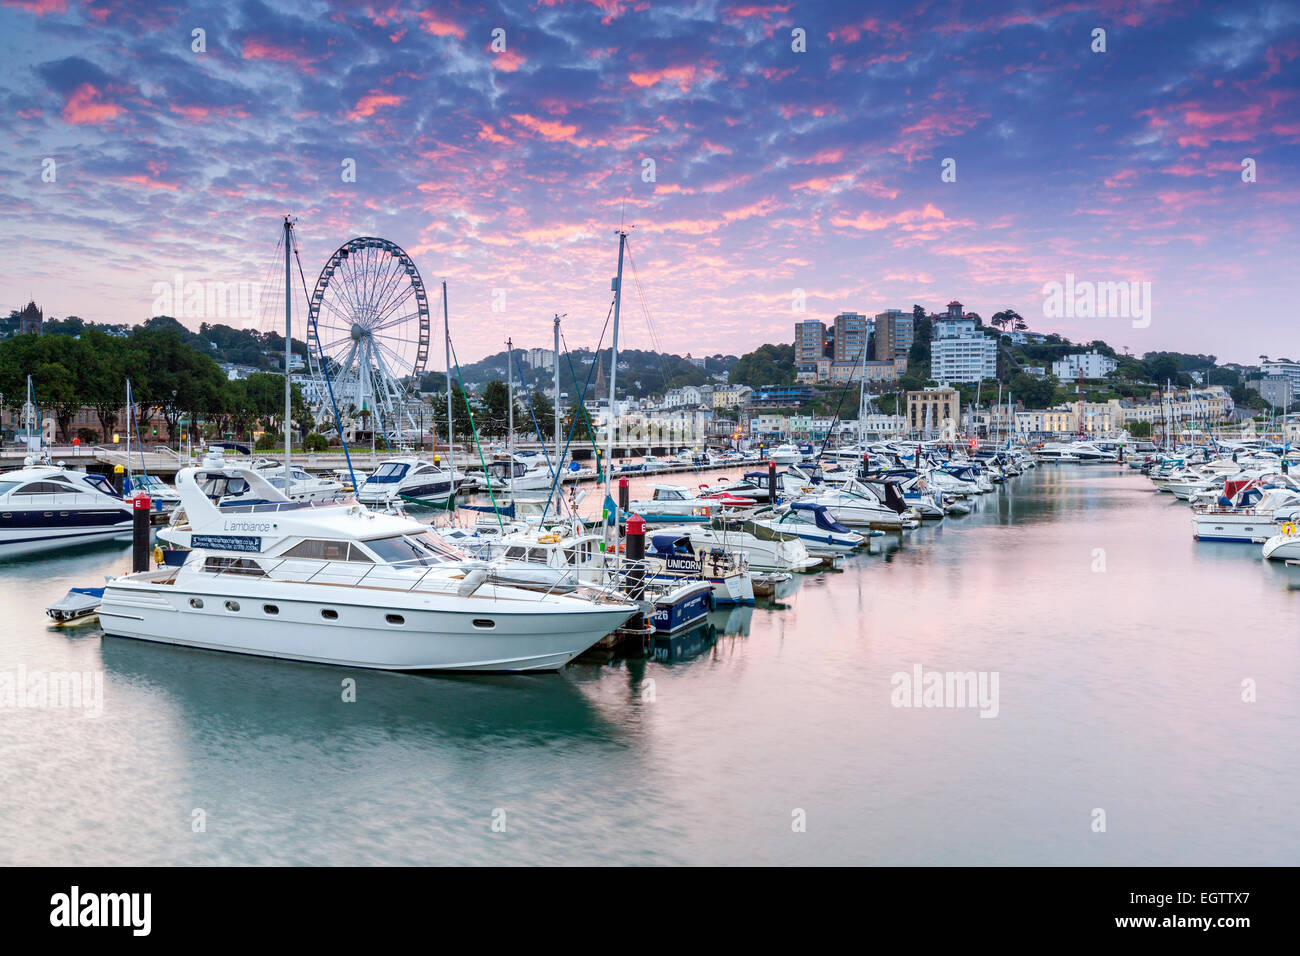 Town and Harbour, Torquay, Devon, England, United Kingdom, Europe. - Stock Image